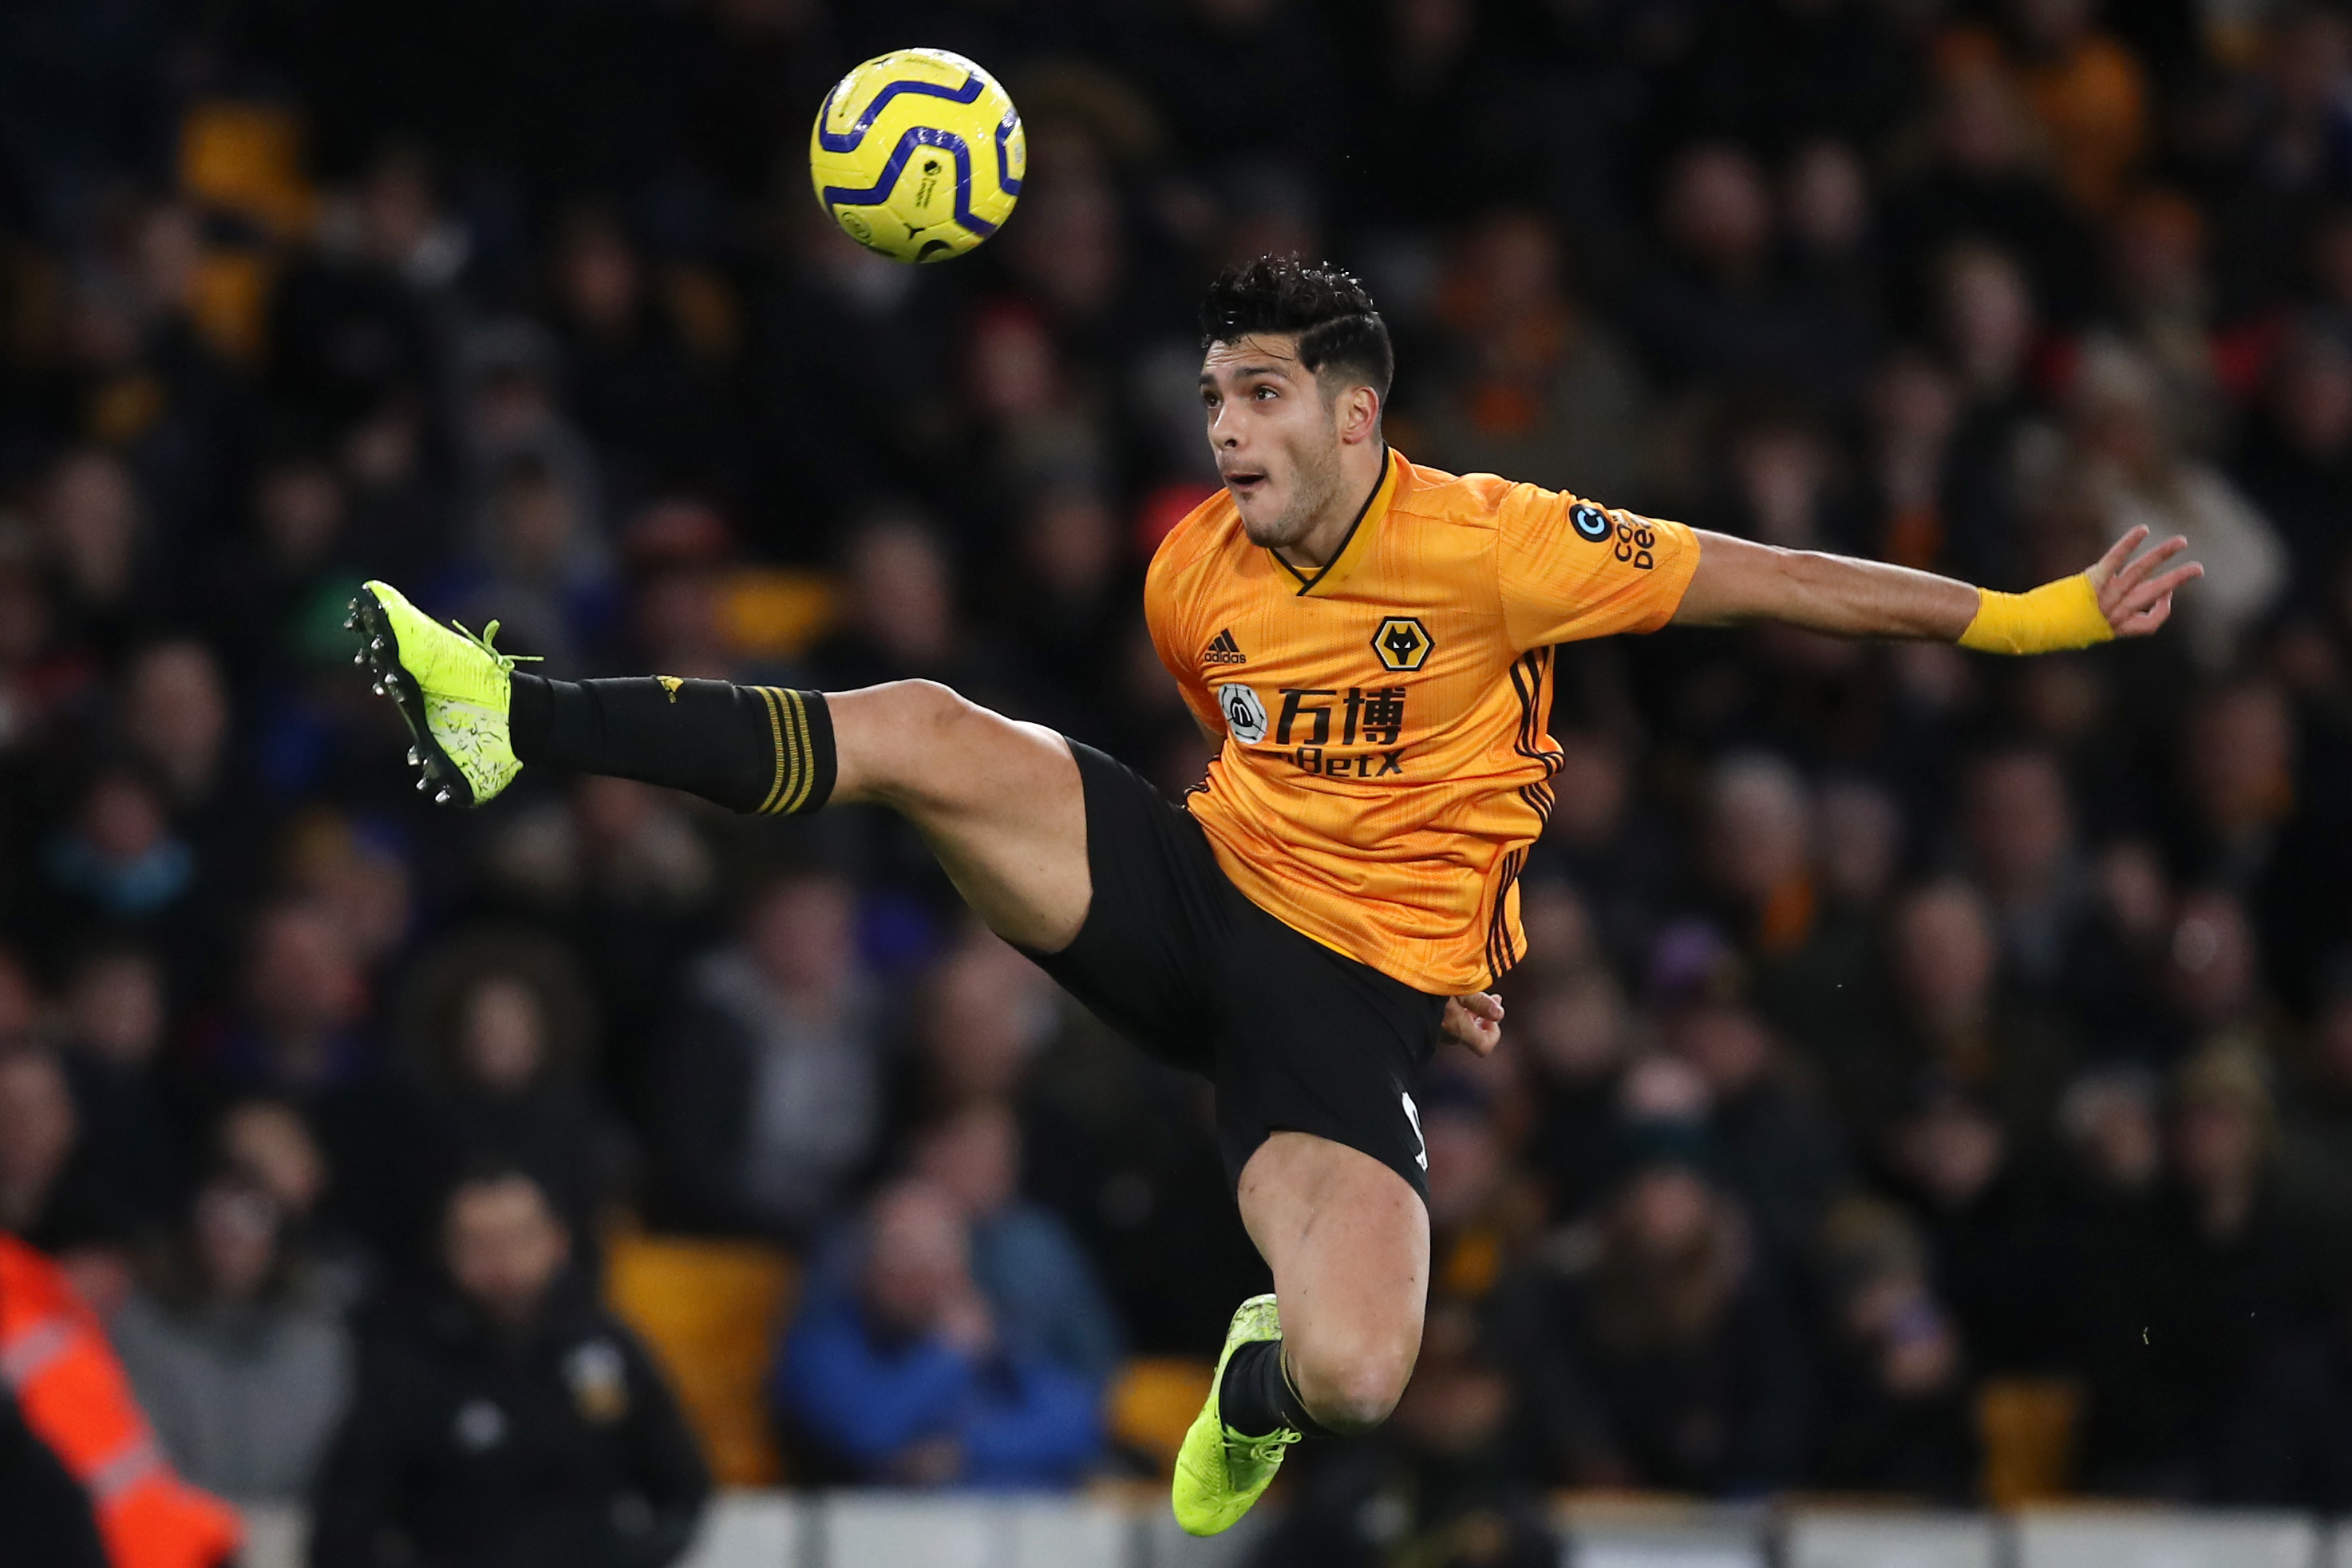 The high-flying Jimenez could be a great addition to Manchester United (Photo by Marc Atkins/Getty Images)